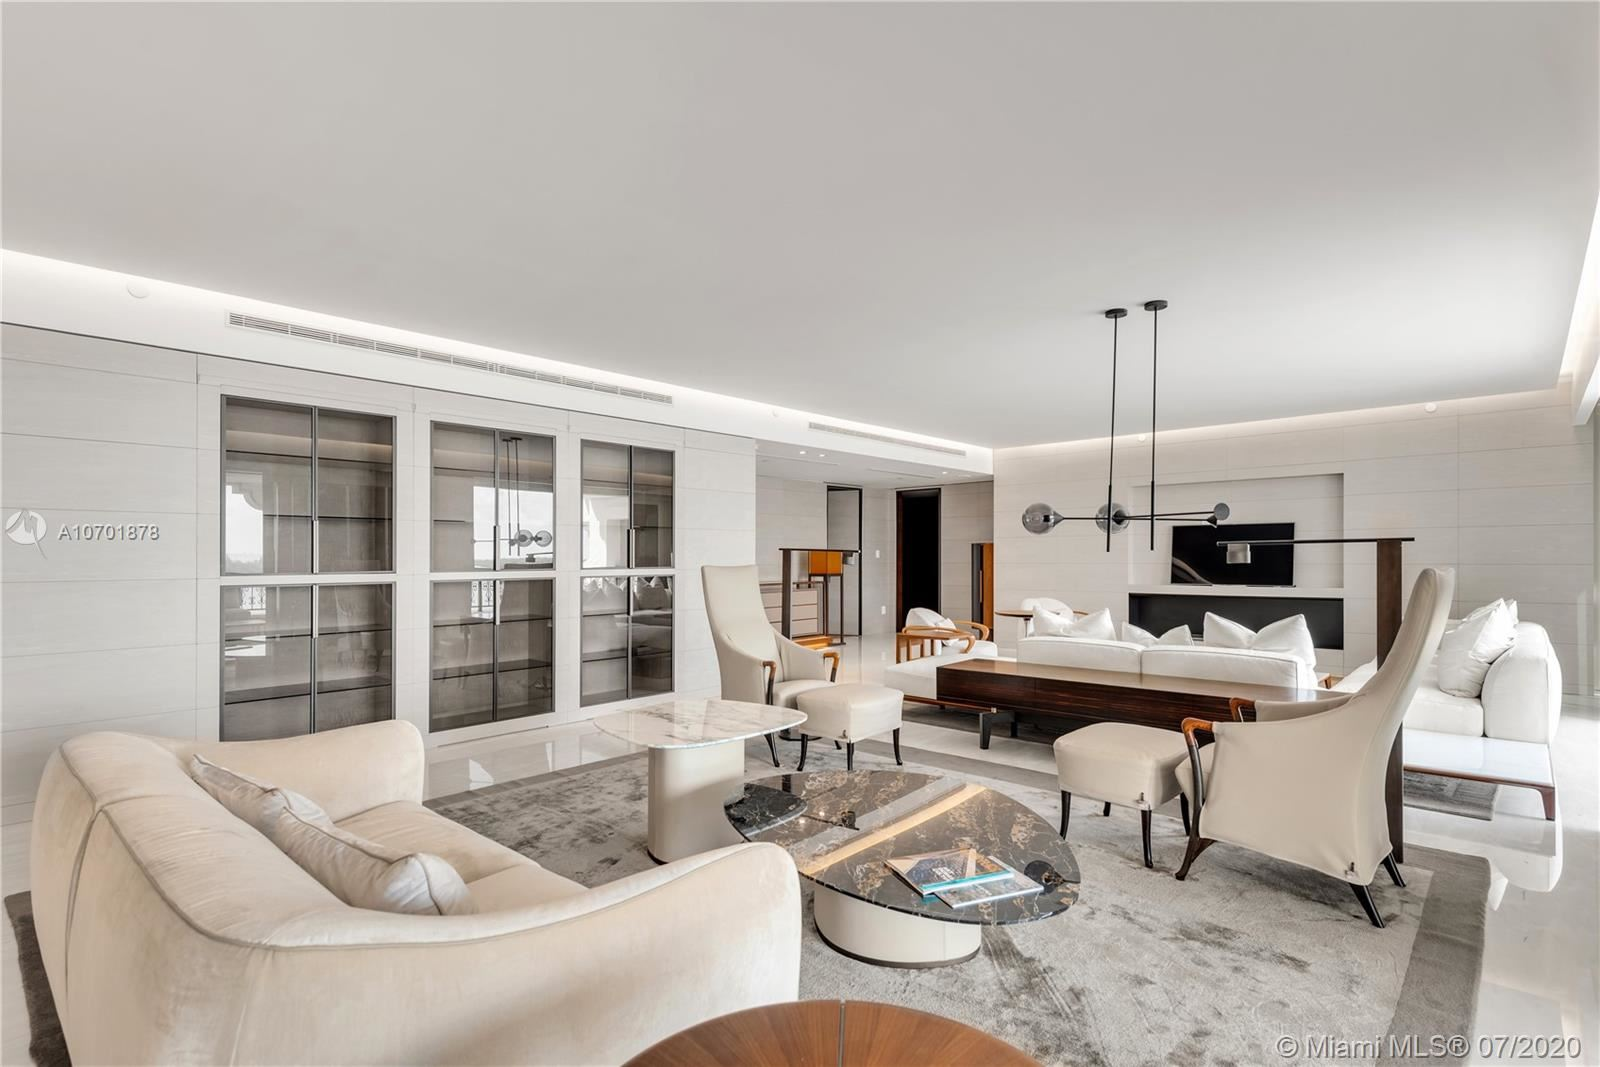 Photo 11 of Listing MLS a10701878 in 5292 Fisher Island Dr #5292 Miami FL 33109